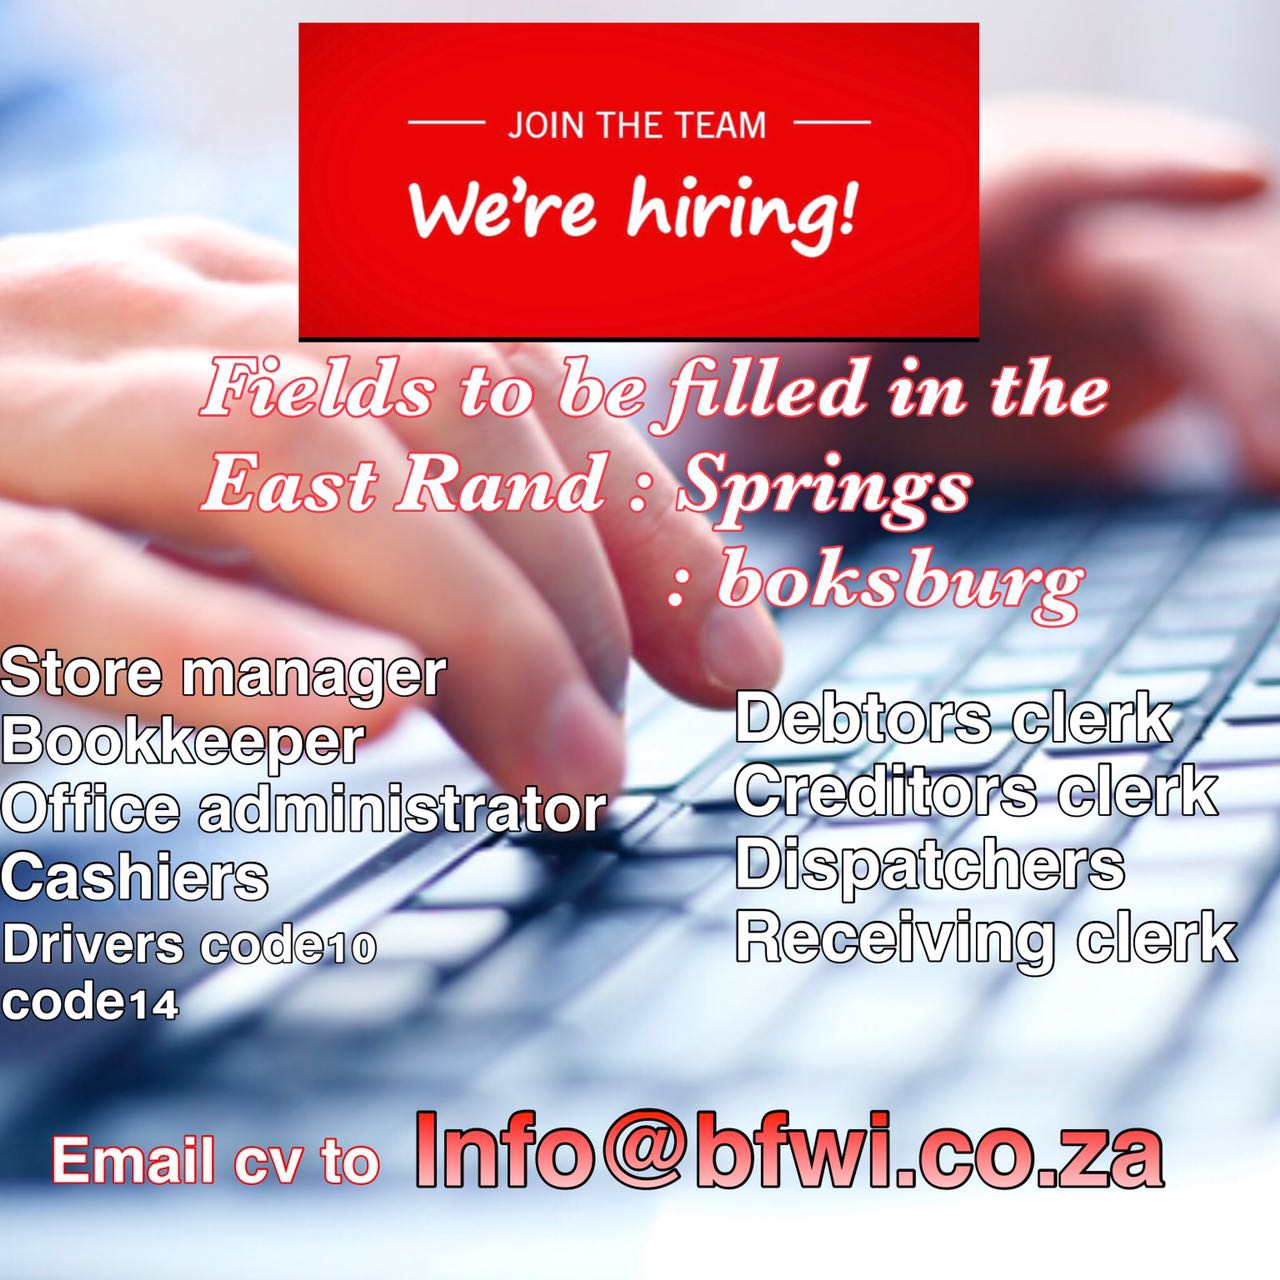 Find accounting jobs in East Rand Jobs | Search Gumtree Free Online Classified Ads for accounting jobs in East Rand Jobs and more.